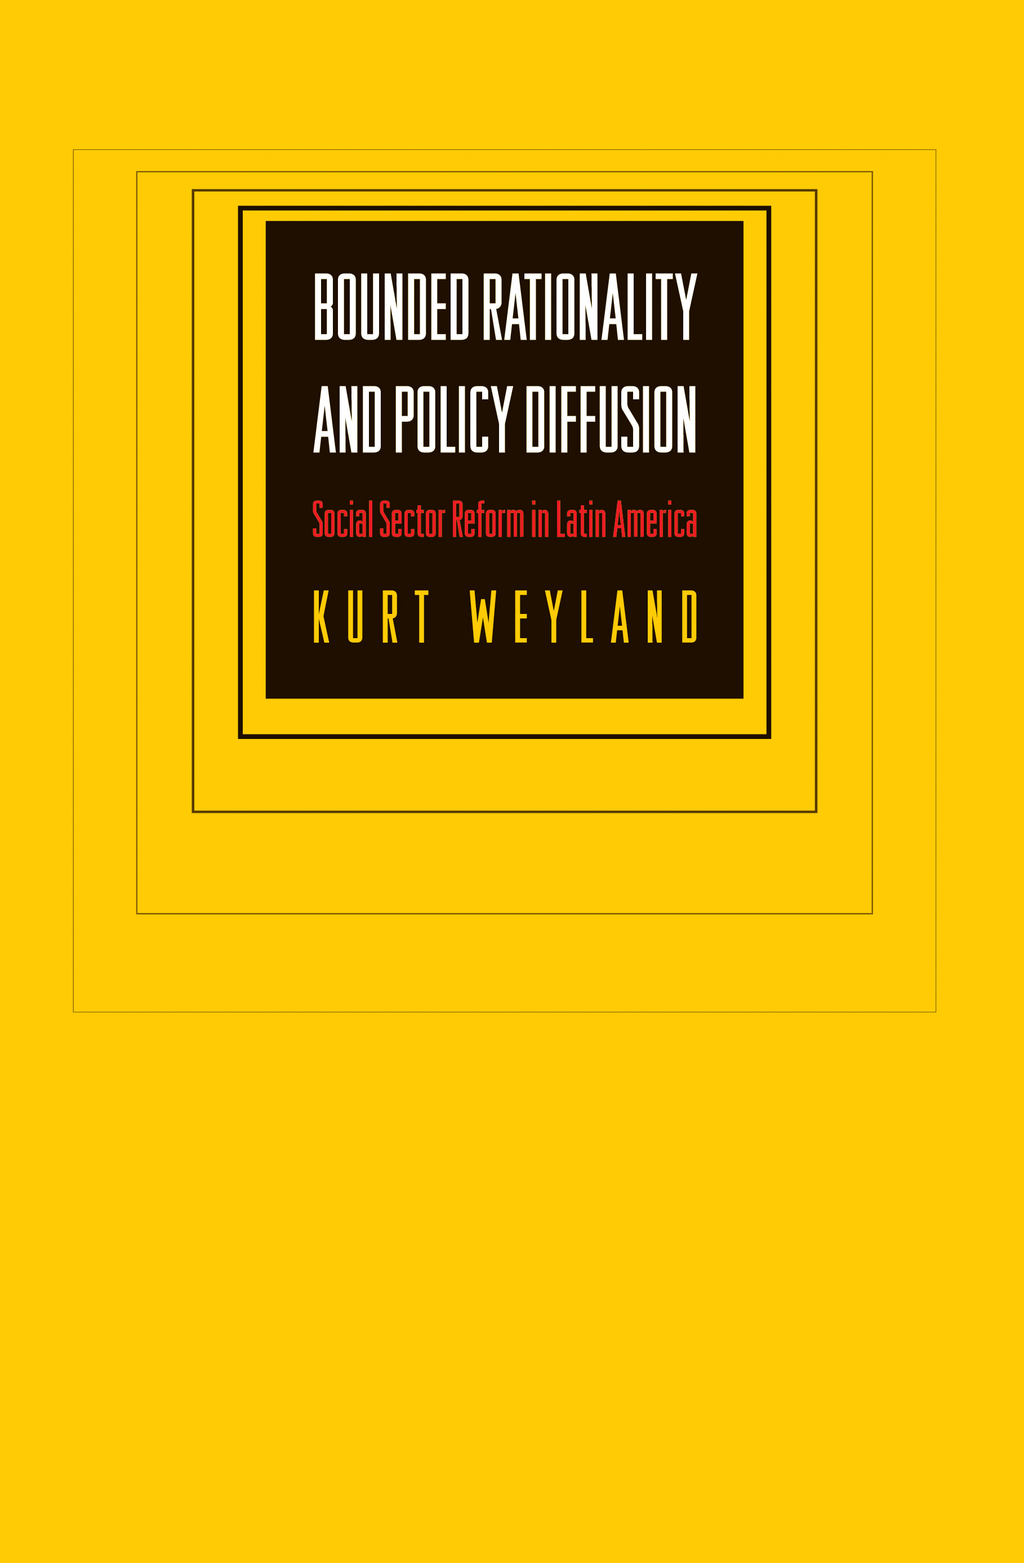 Bounded Rationality and Policy Diffusion By: Kurt Weyland